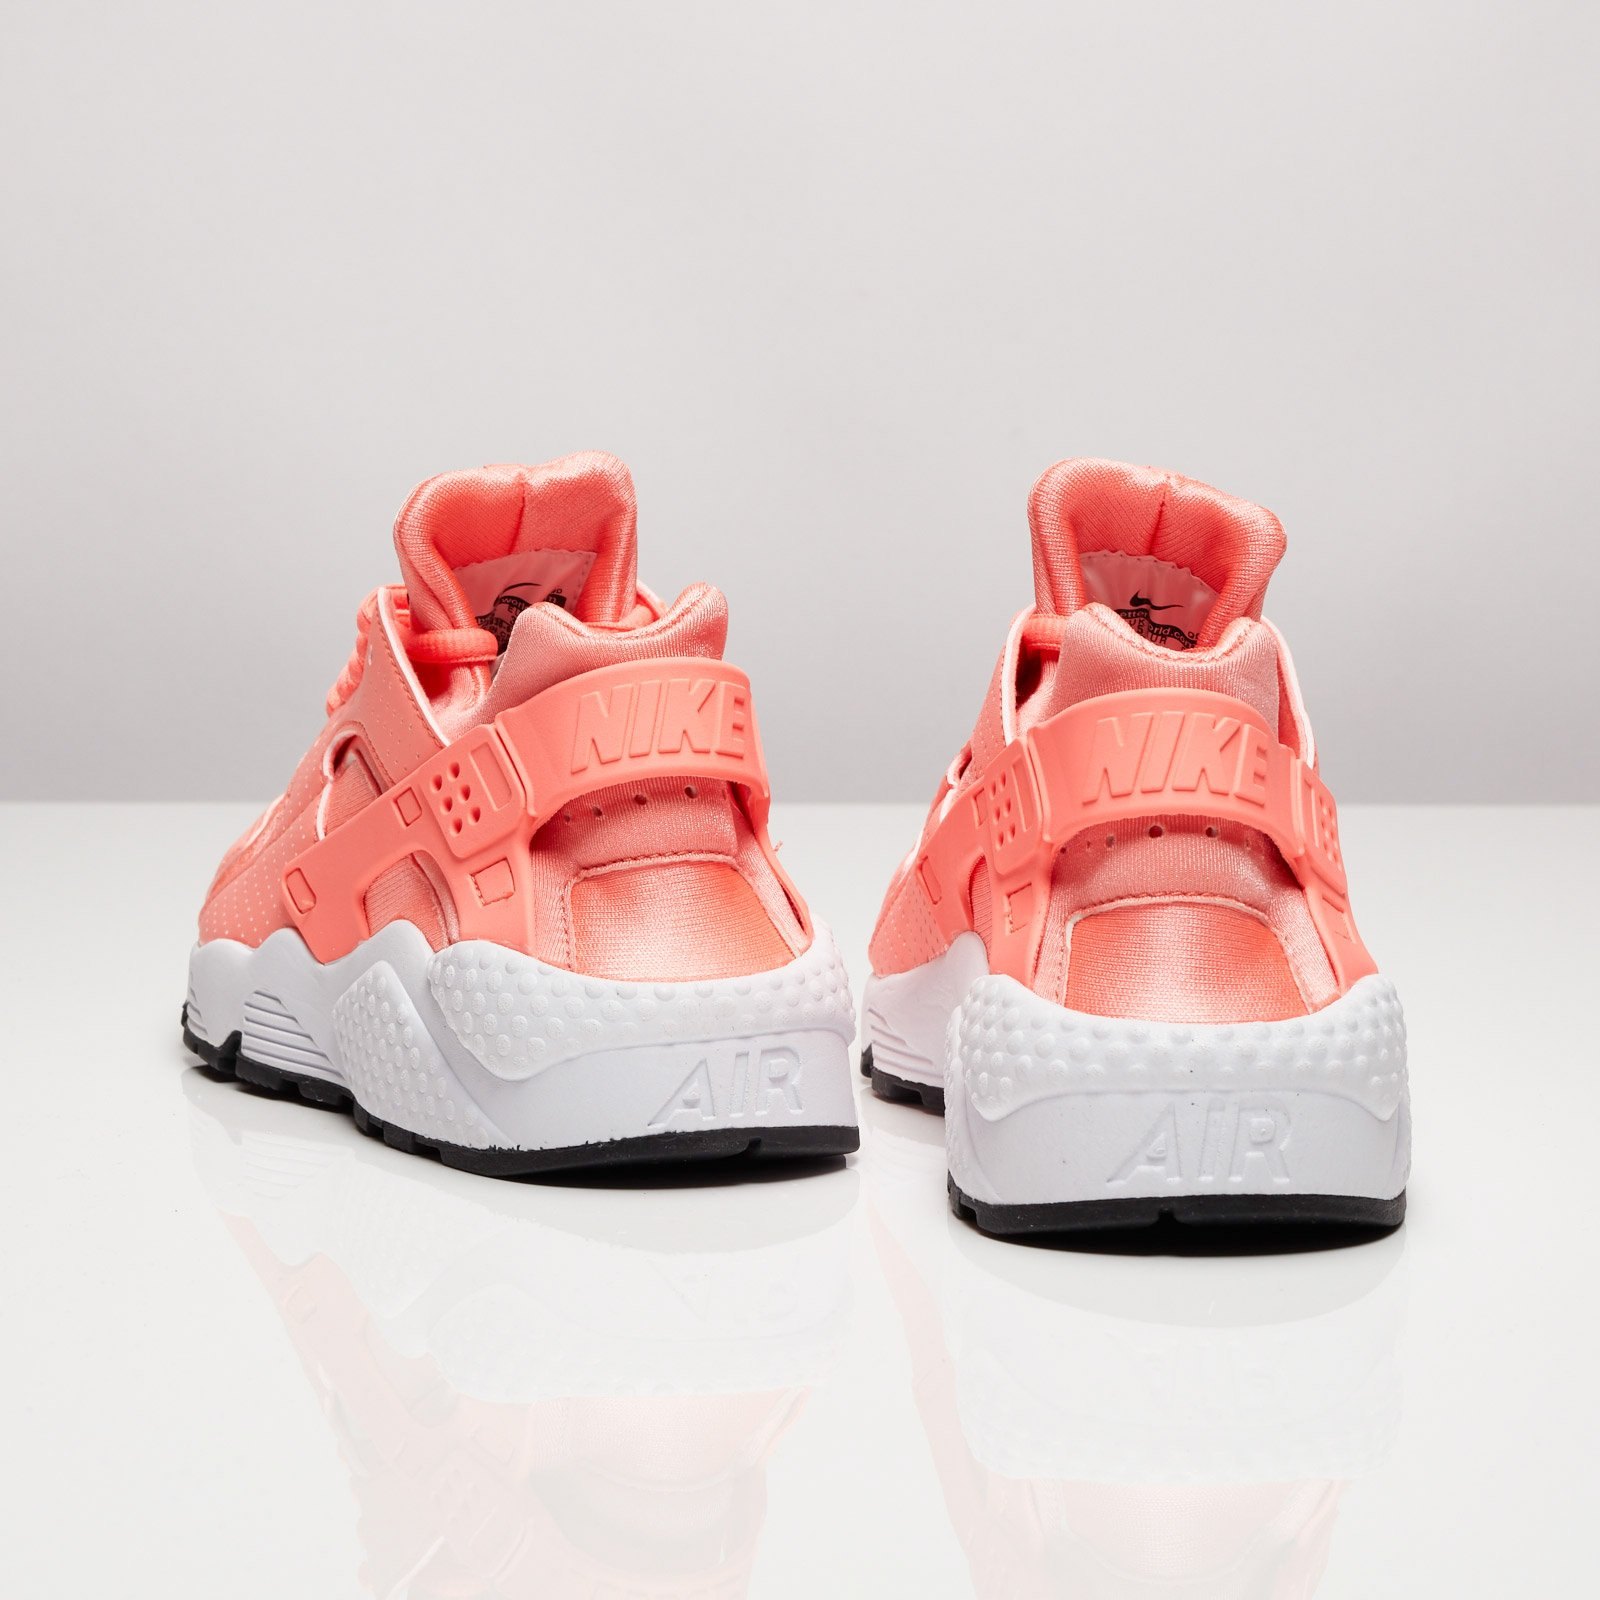 Nike Wmns Air Huarache Run Nike Wmns Air Huarache Run ...